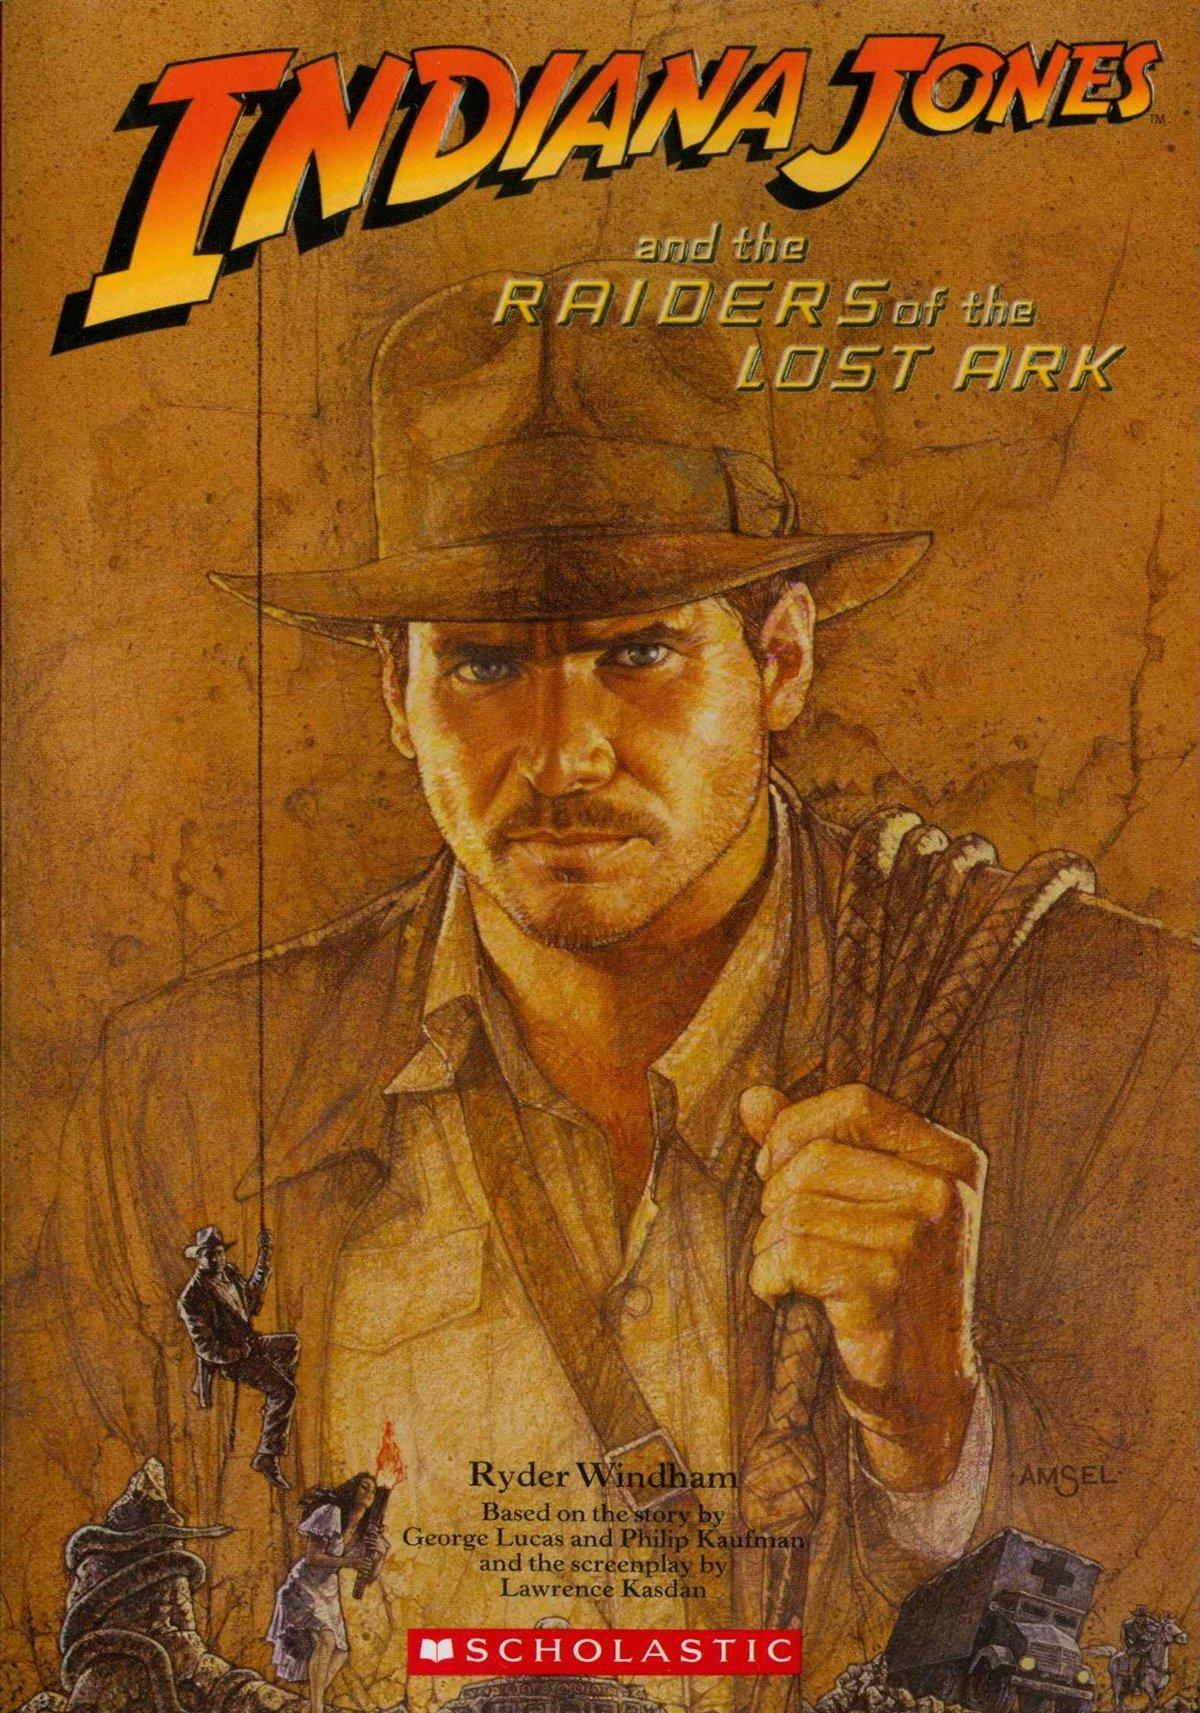 Indiana Jones and the Raiders of the Lost Ark: Ryder Windham ...